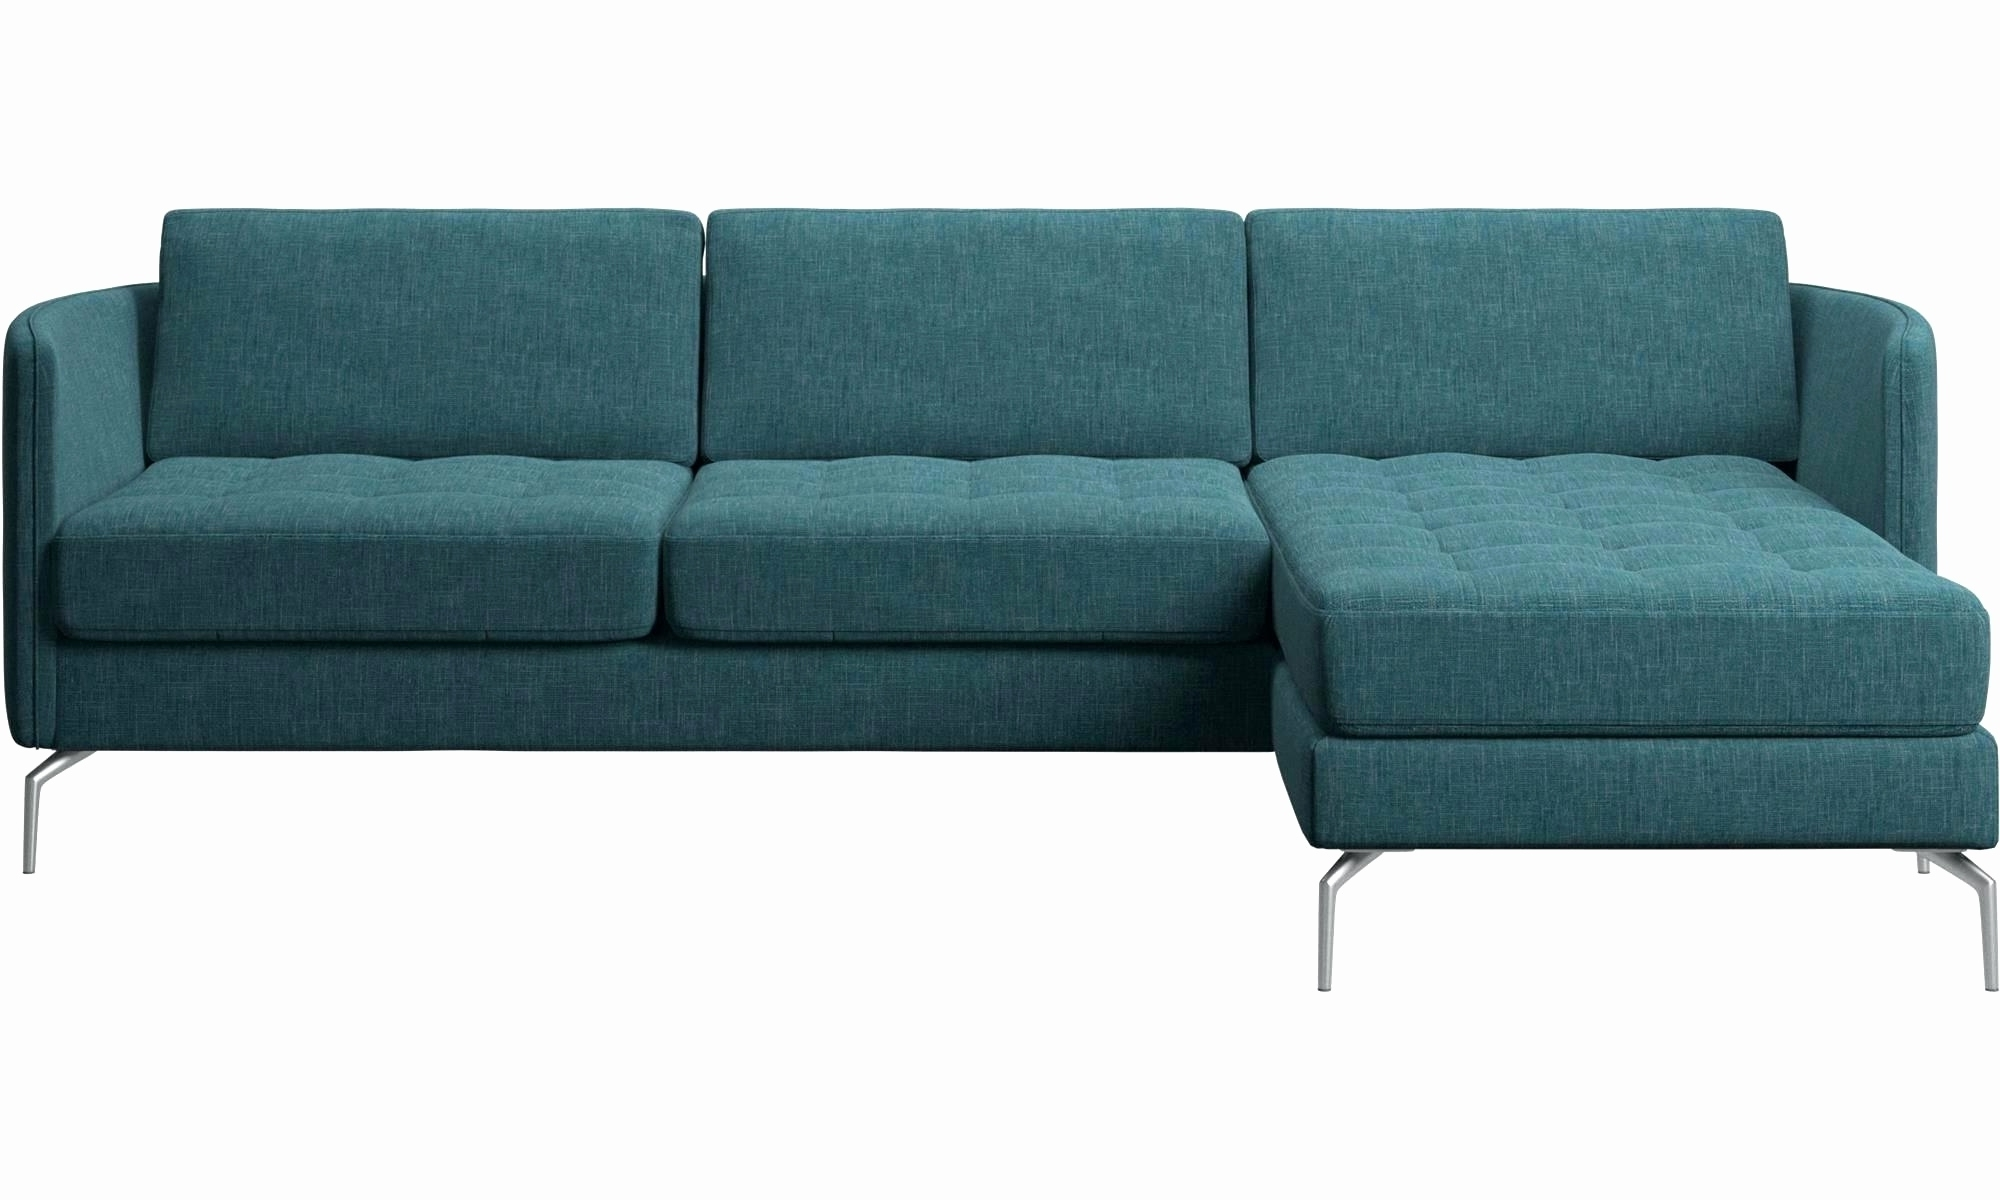 Most Current Sofas : 2 Piece Sectional Sofa Double Chaise Lounge Sofa Chaise Regarding Sofas With Chaise Lounge (View 7 of 15)